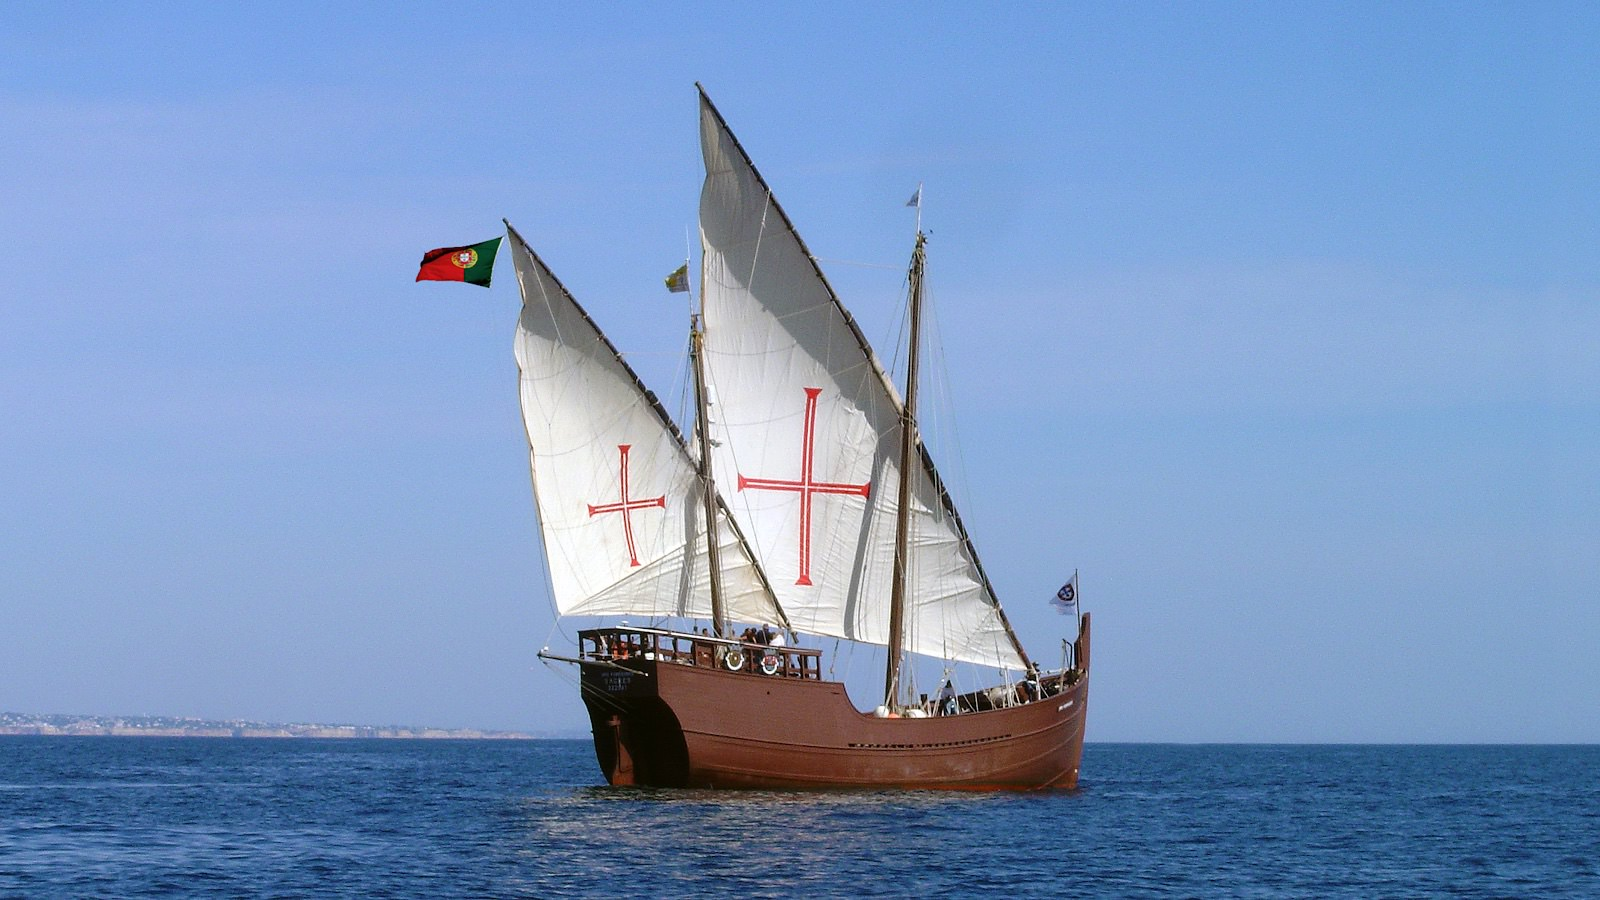 The caravel, used by Portuguese explorers, was a ship with triangular sails that made it possible to sail into the wind.